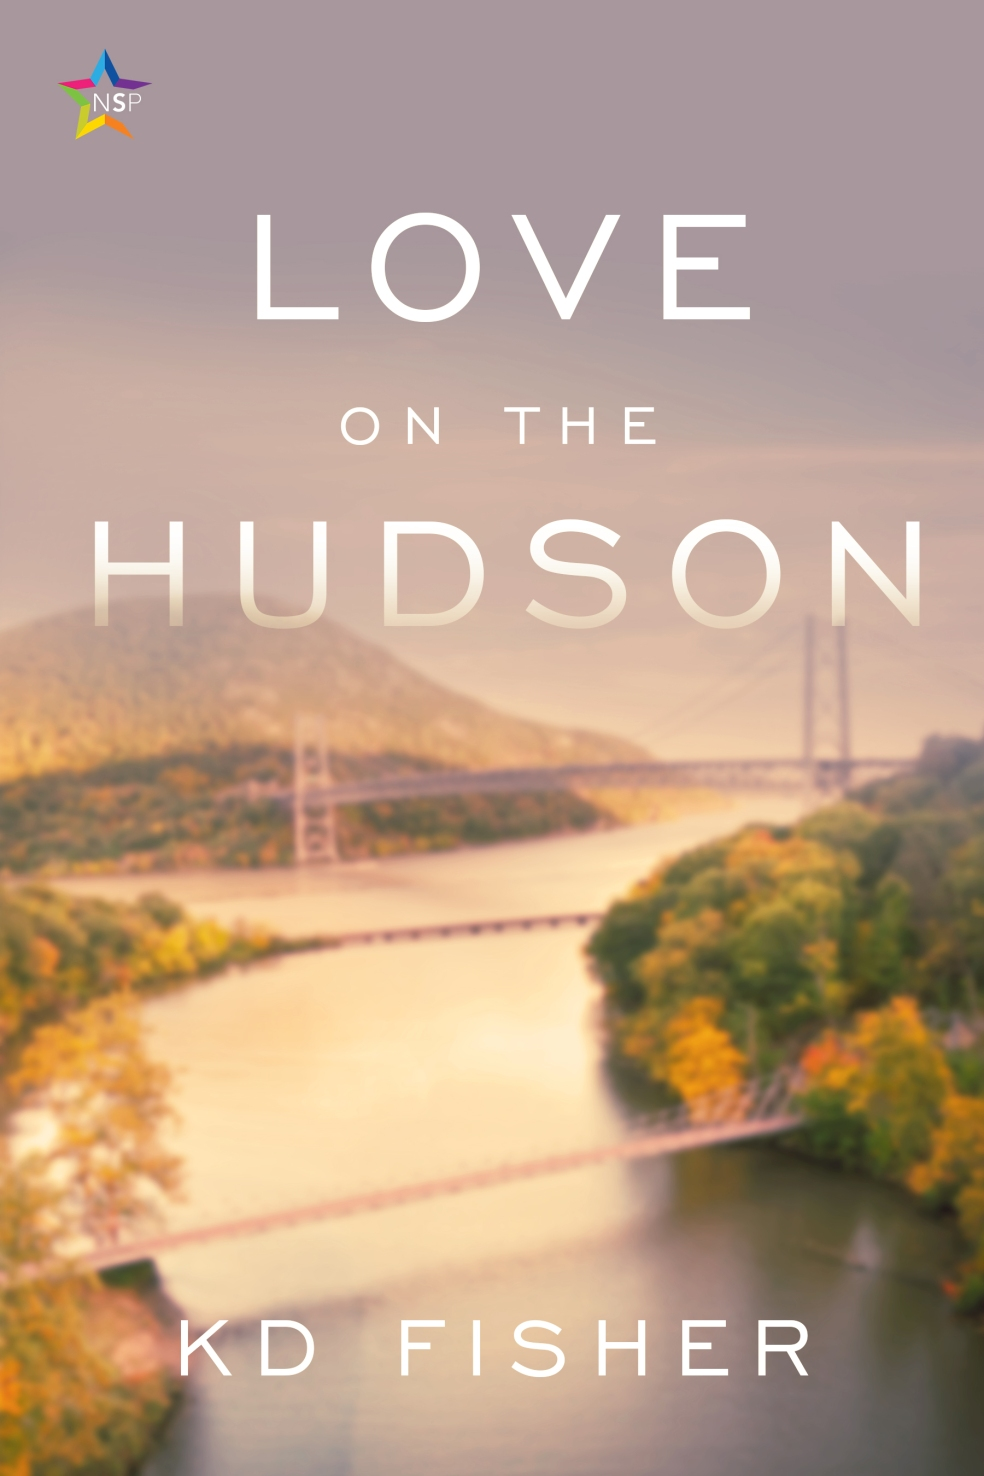 LoveontheHudson-f.jpg